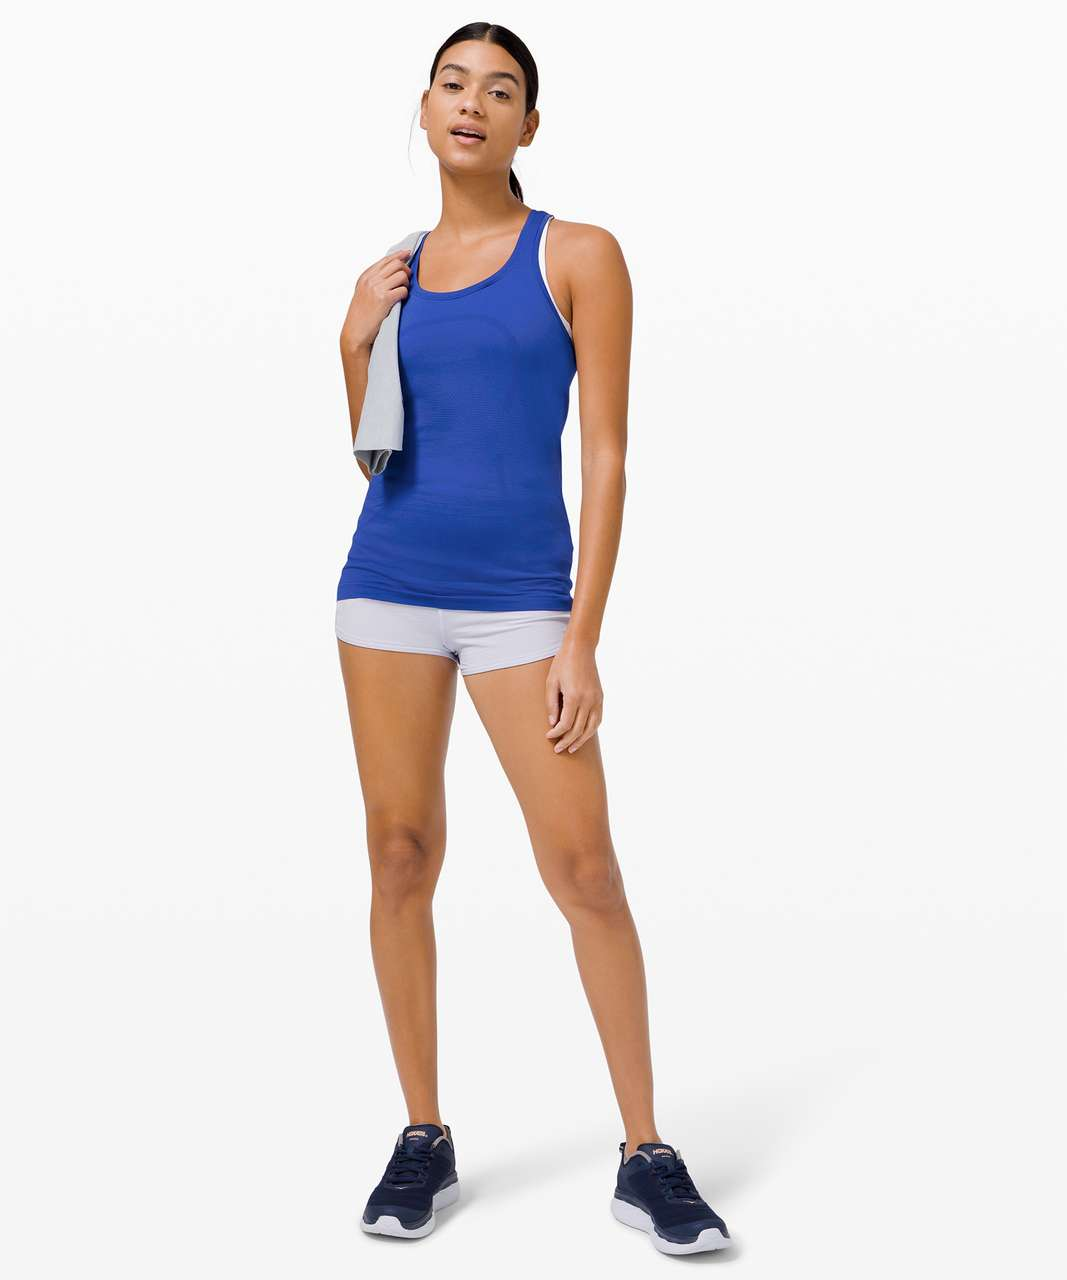 Lululemon Swiftly Tech Racerback 2.0 - Harbor Blue / Harbor Blue